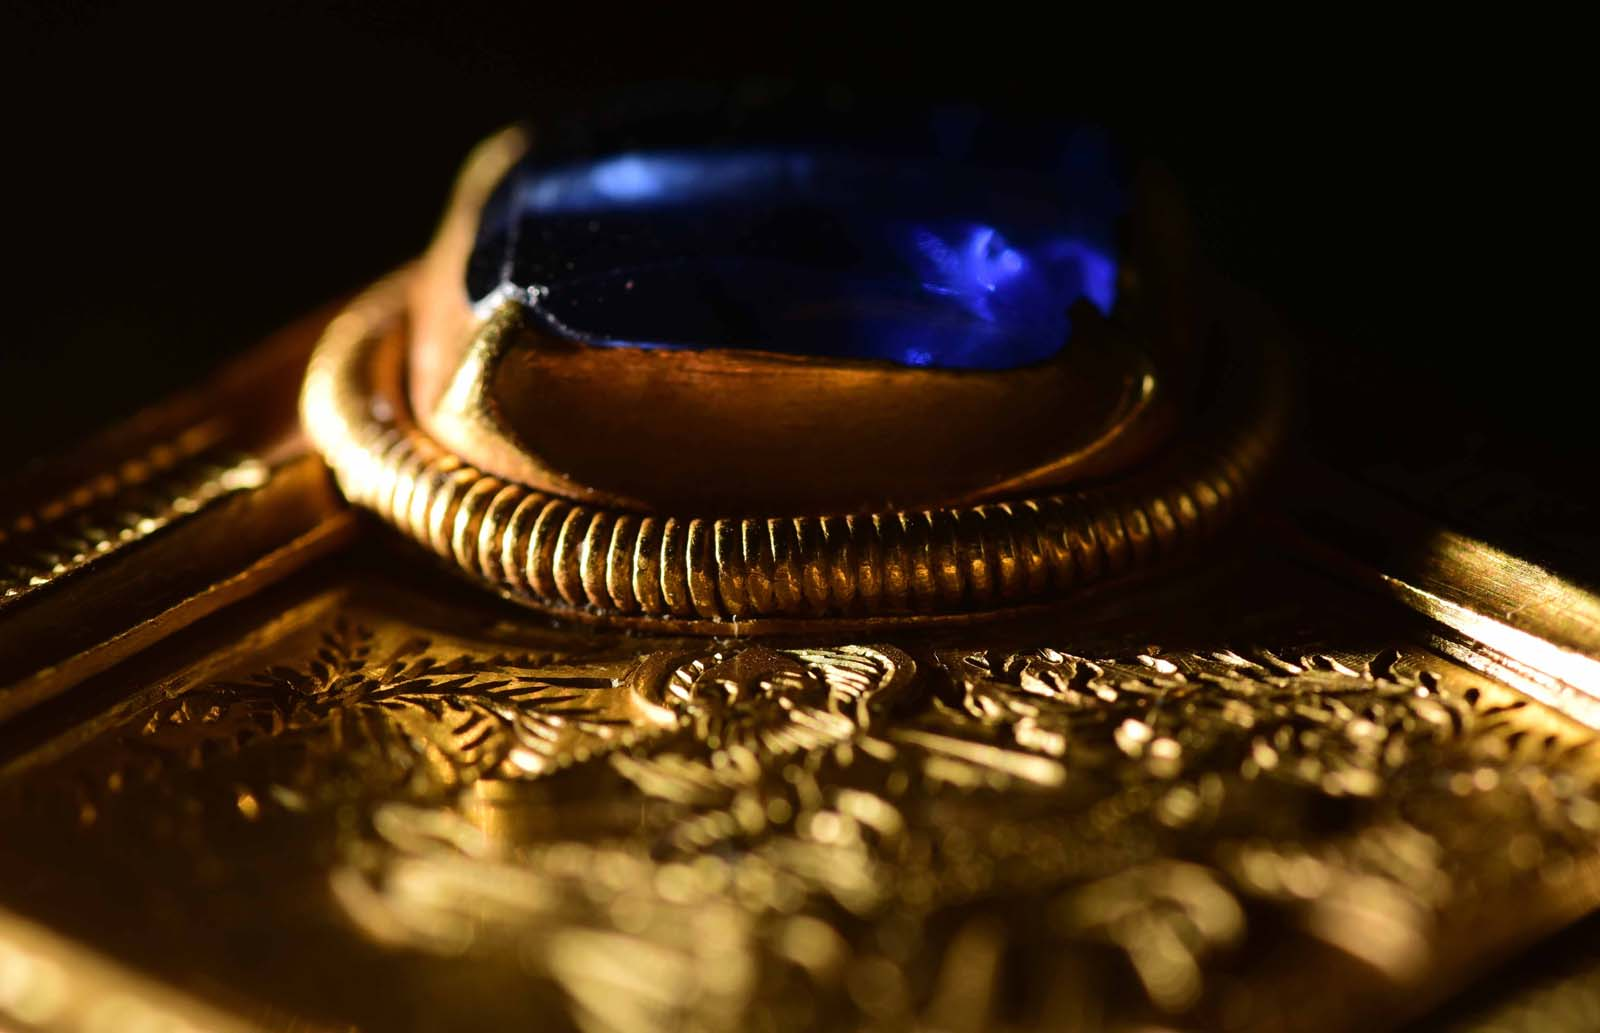 close up photo of a blue jewel set in gold mount